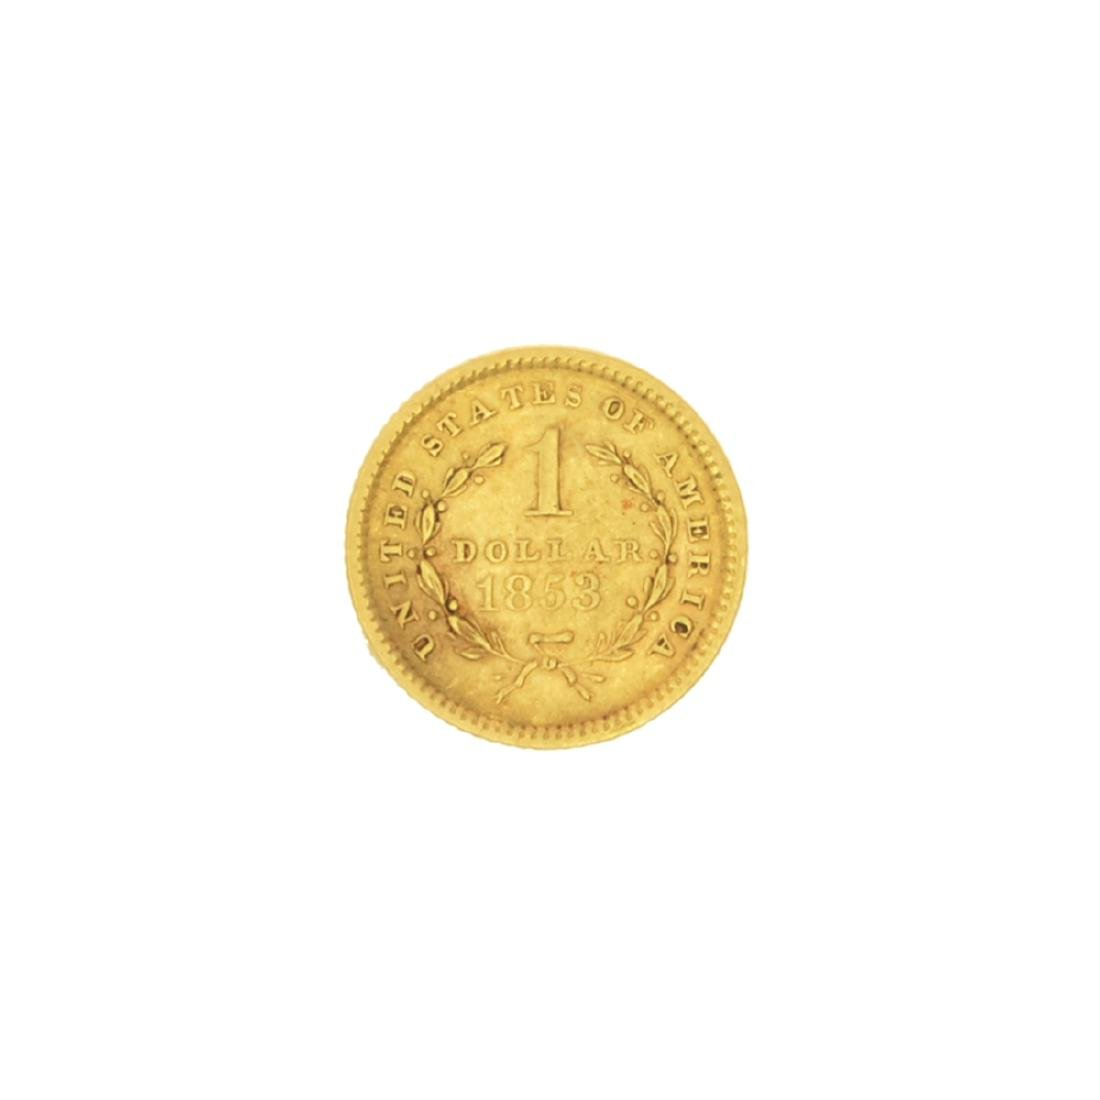 Very Rare 1853 $1 U.S. Liberty Head Gold Coin Great - 2